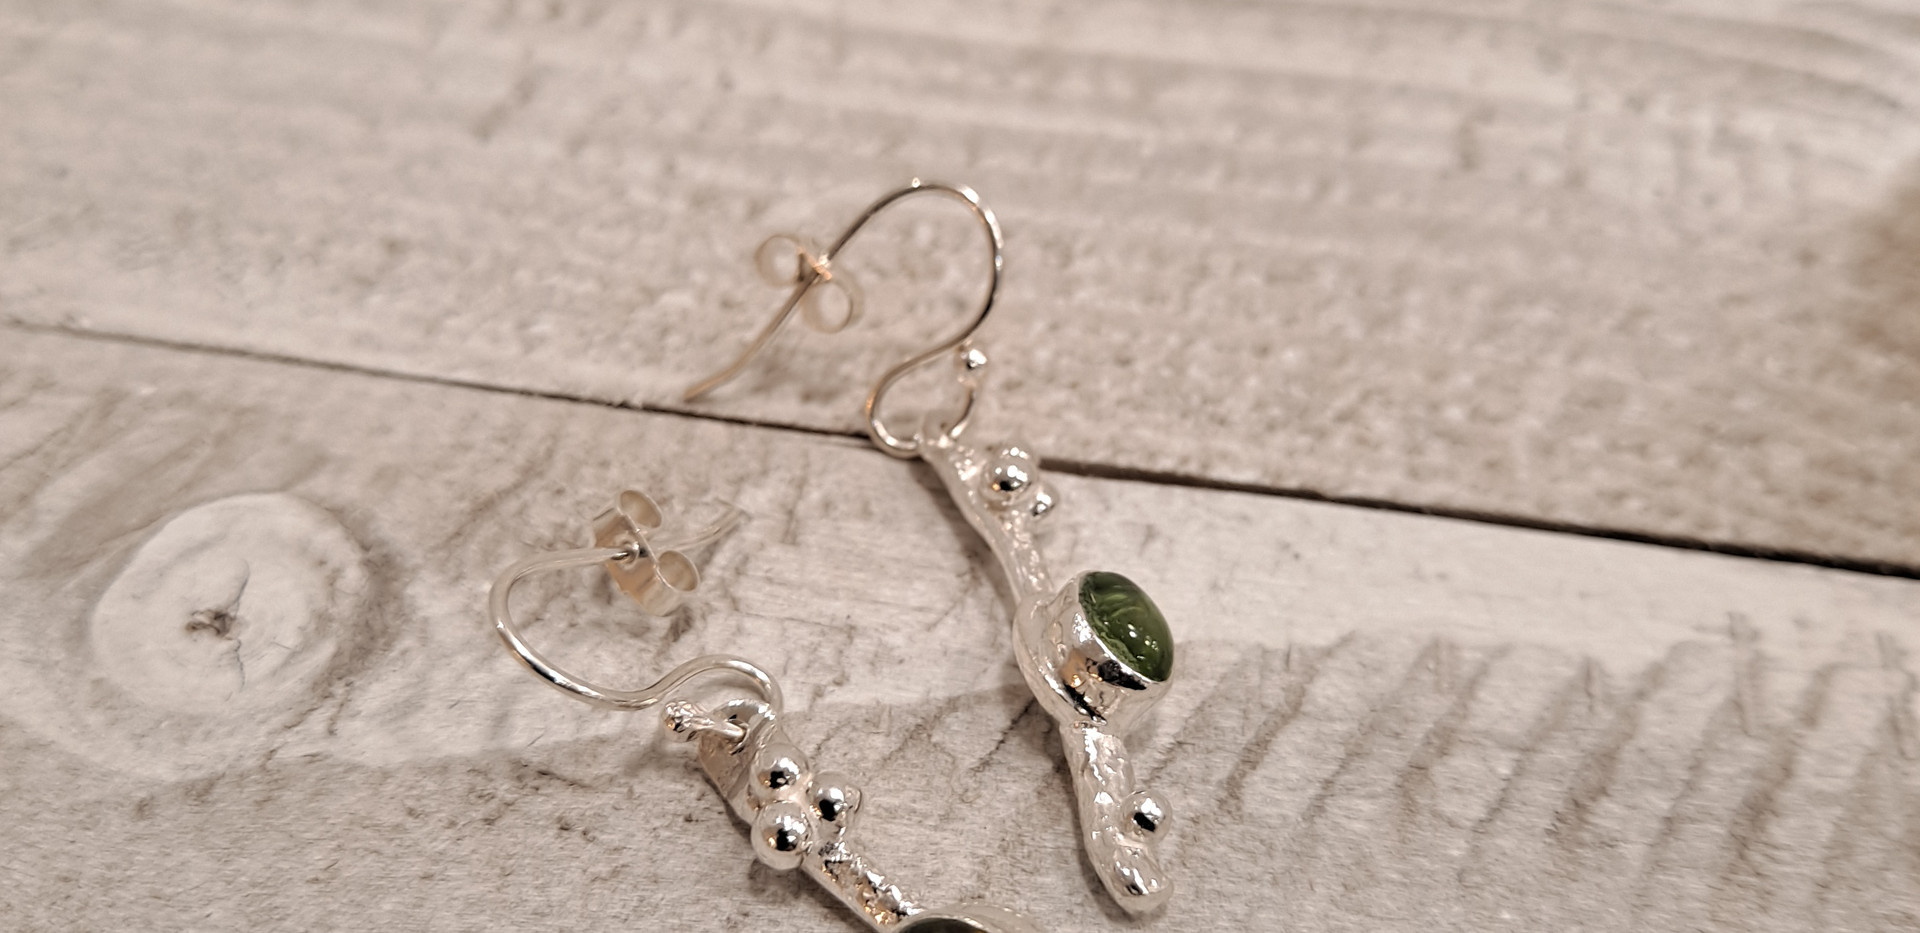 Sally Ratcliffe - Drop pebble earrings with silver decoration peridot